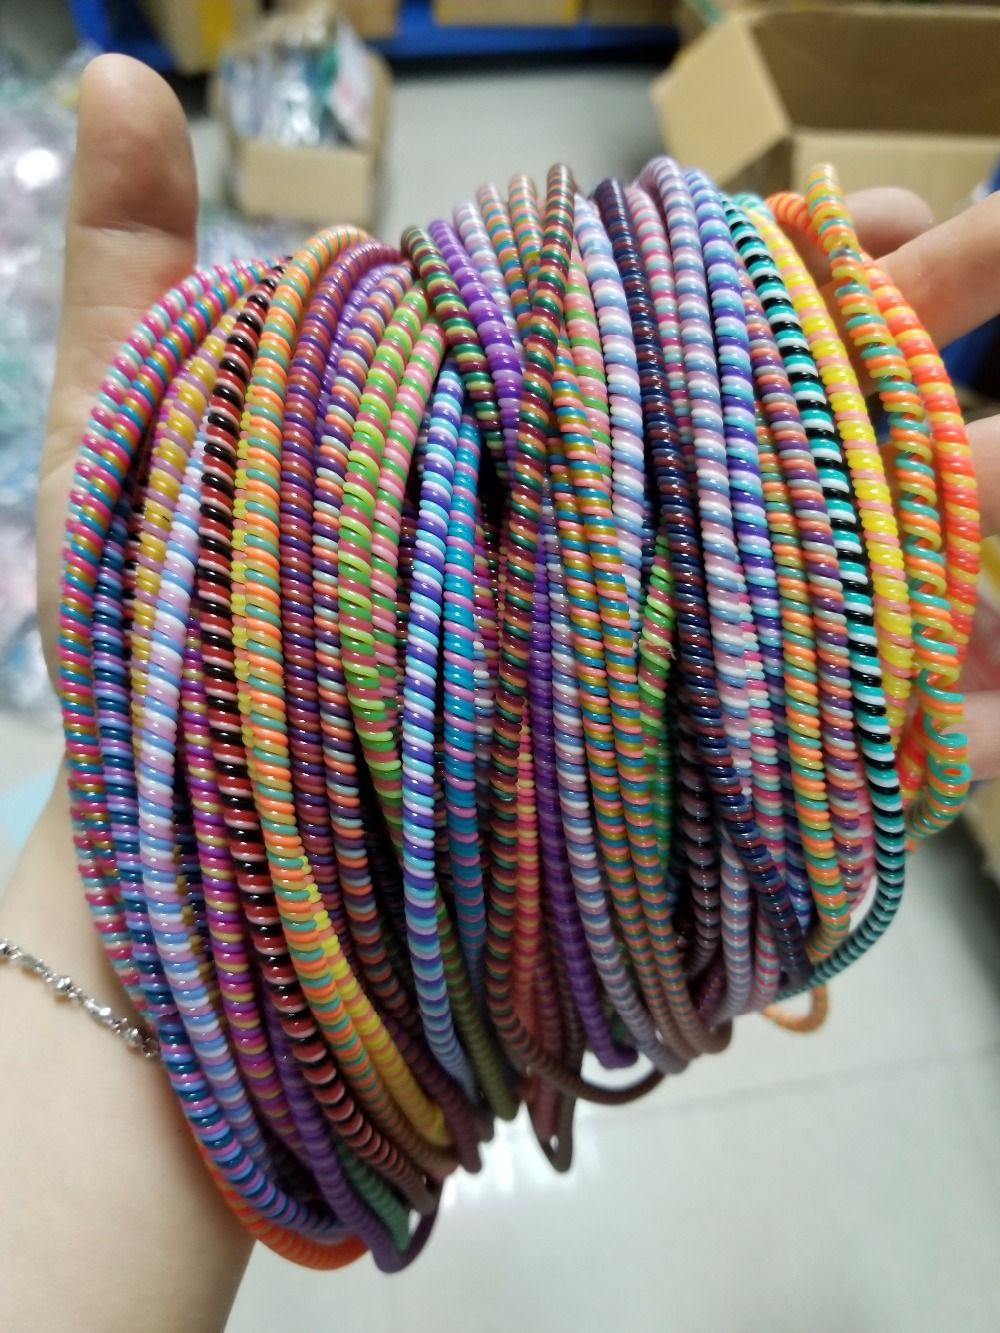 400pcs/lot three colors Solid Color TPU spiral USB Charger cable cord protector wrap cable winder organizer, Hair ring 50cm